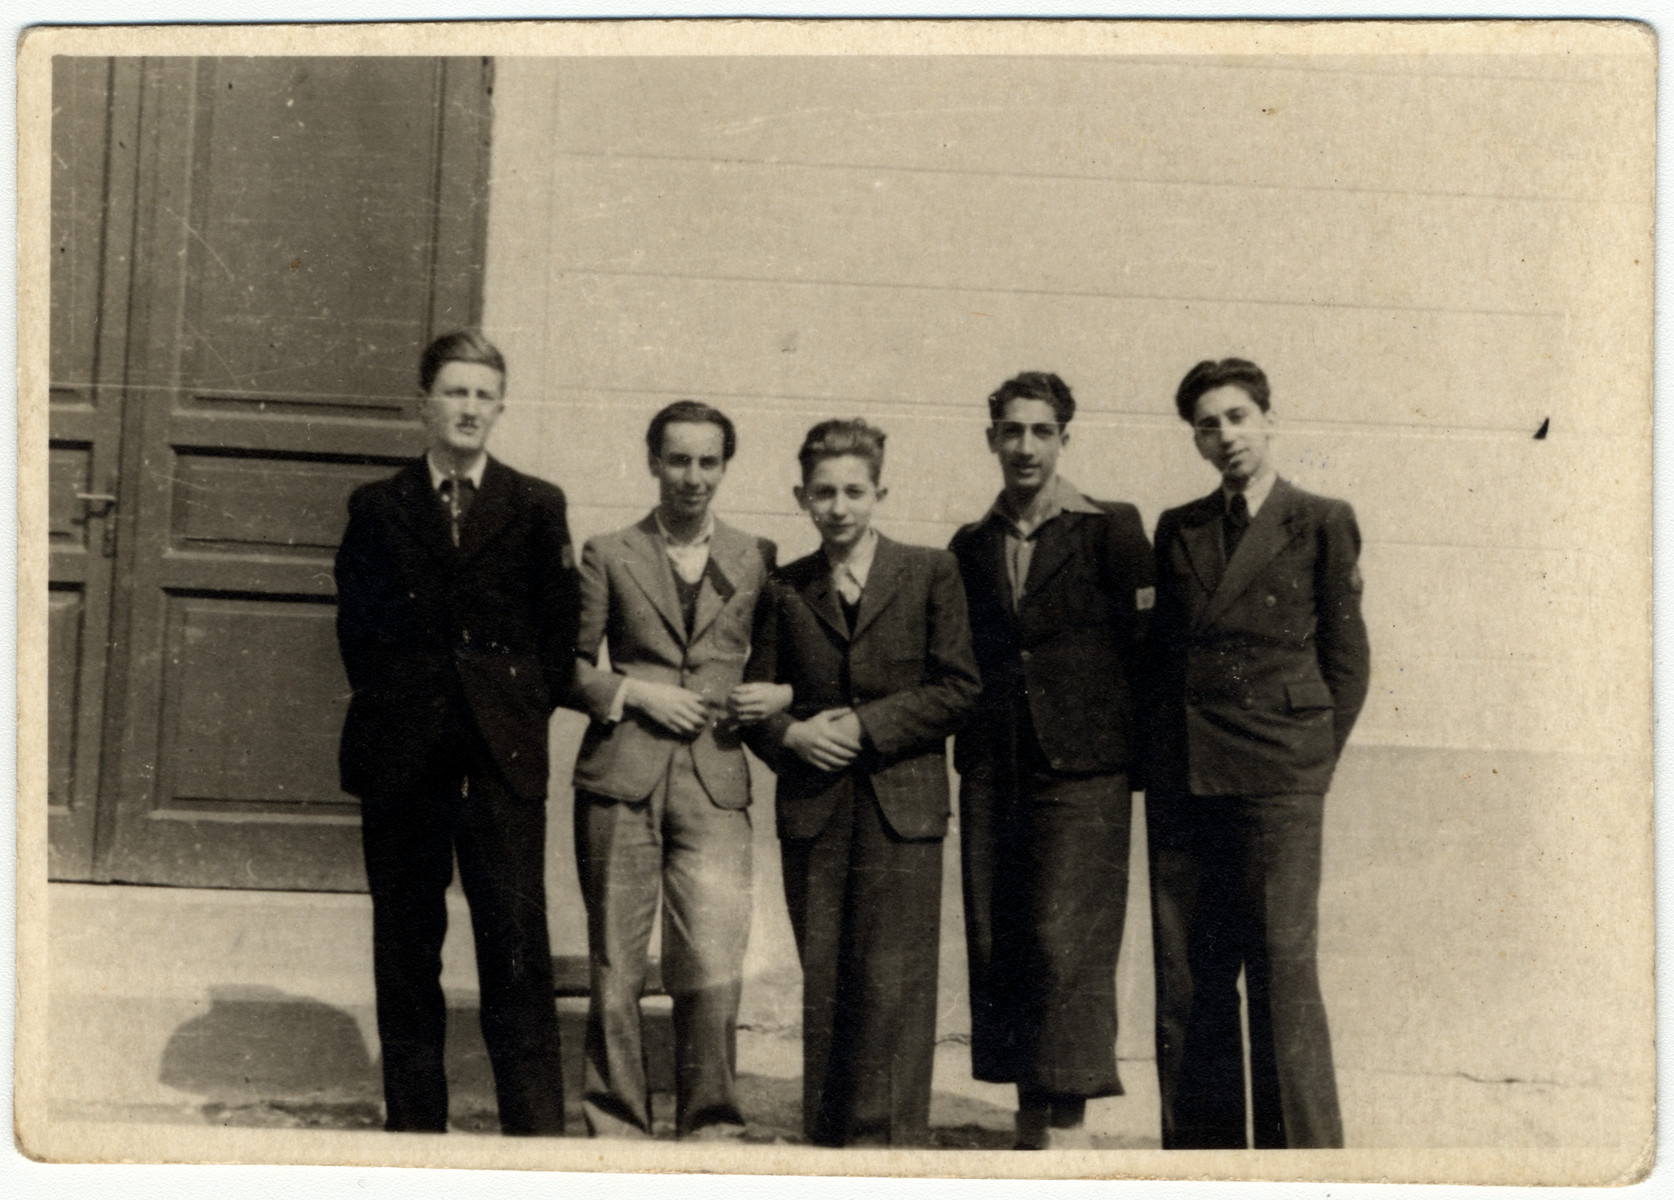 Portrait of five high school boys during the war in Brasov.  All were classmates of the donor who had already been expelled for being Jewish.  On the far left is Victor Stanculescu (he later became Romania's Minister of Defence and ordered the execution of Ceausescu.)  On the right is Mircea  Cristescu (he later became the conductor of the Romanian symphony).